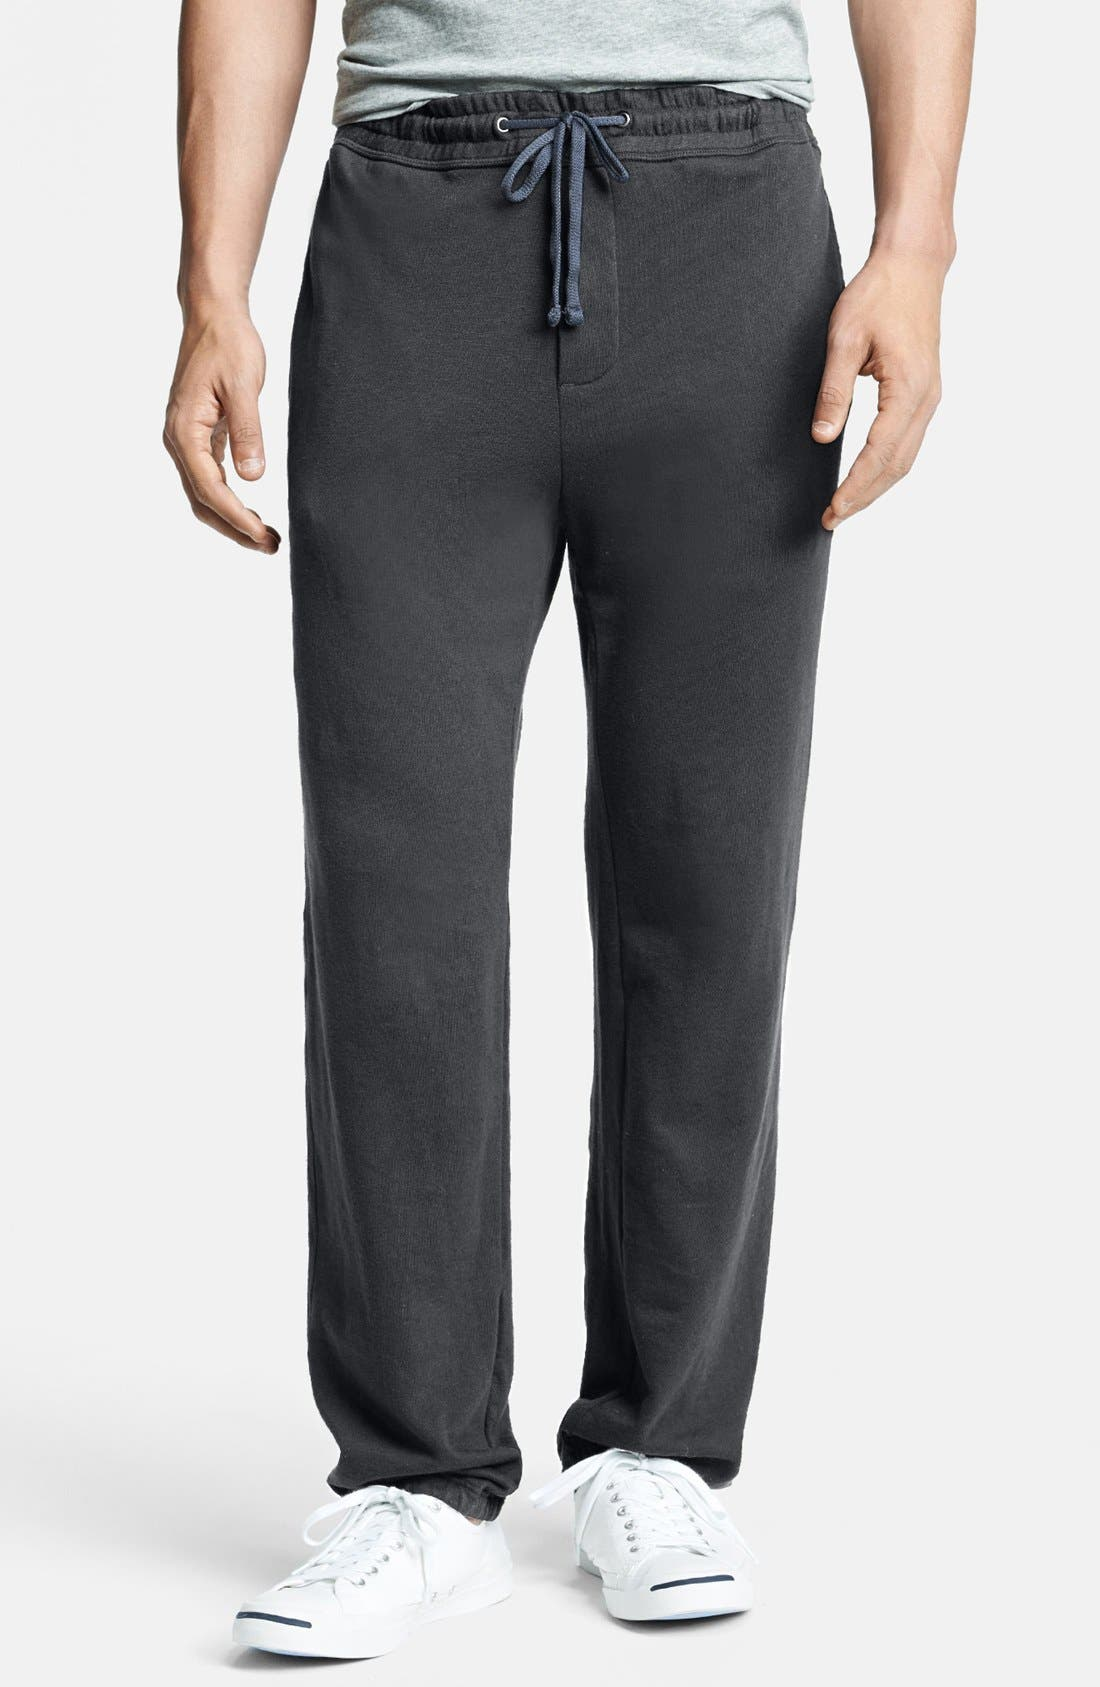 JAMES PERSE 'Classic' Sweatpants